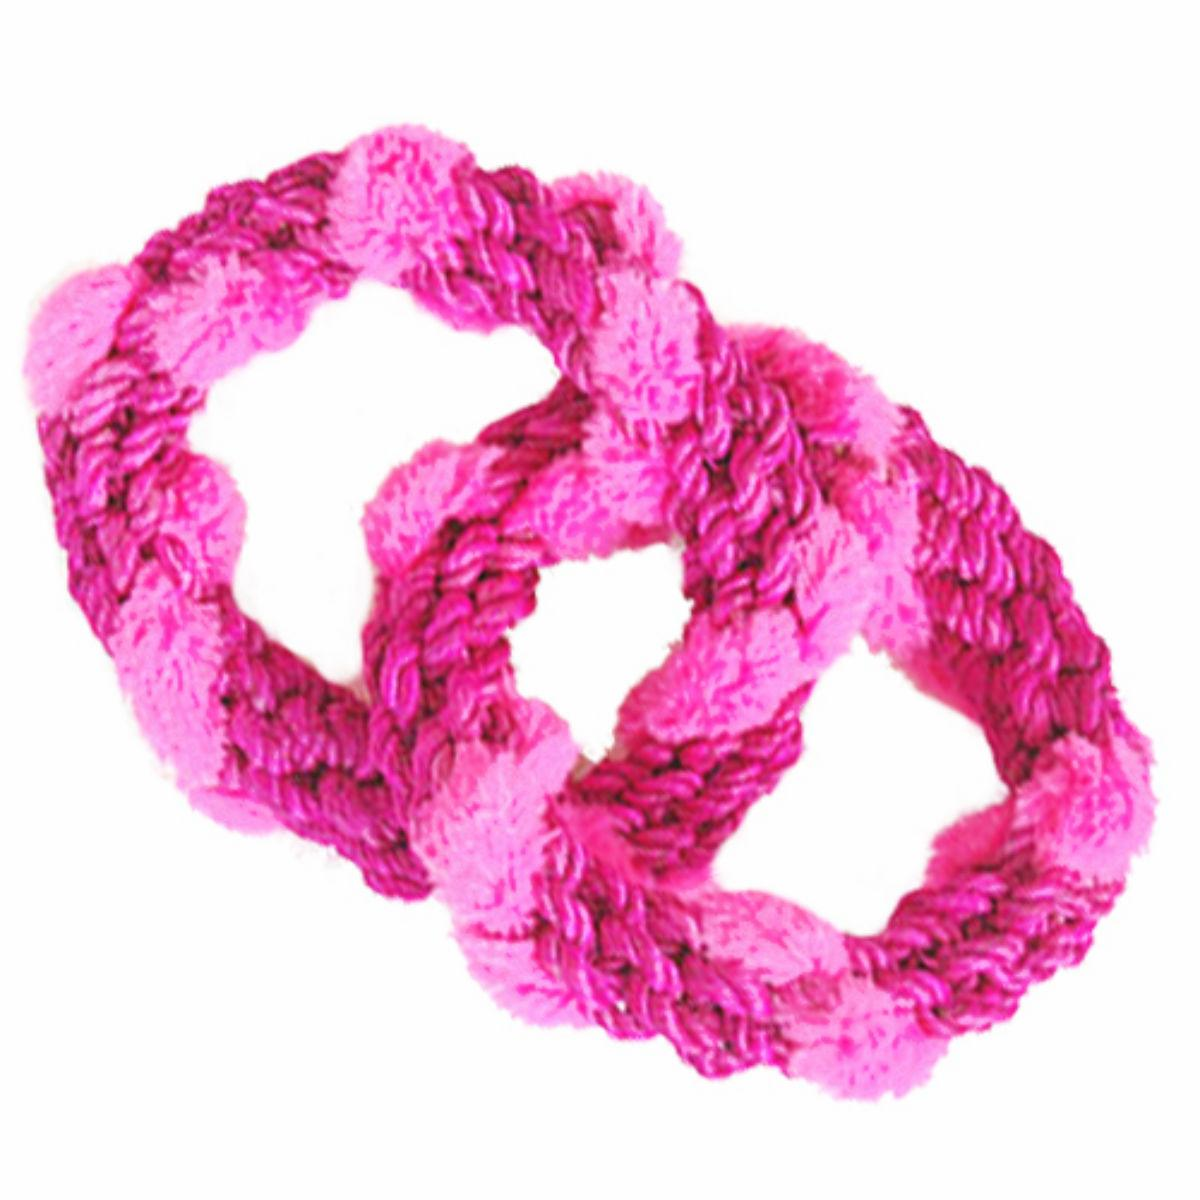 ABACA-DABRA 2 Circle Tug Dog Toy from WaLk-e-Woo - Pink